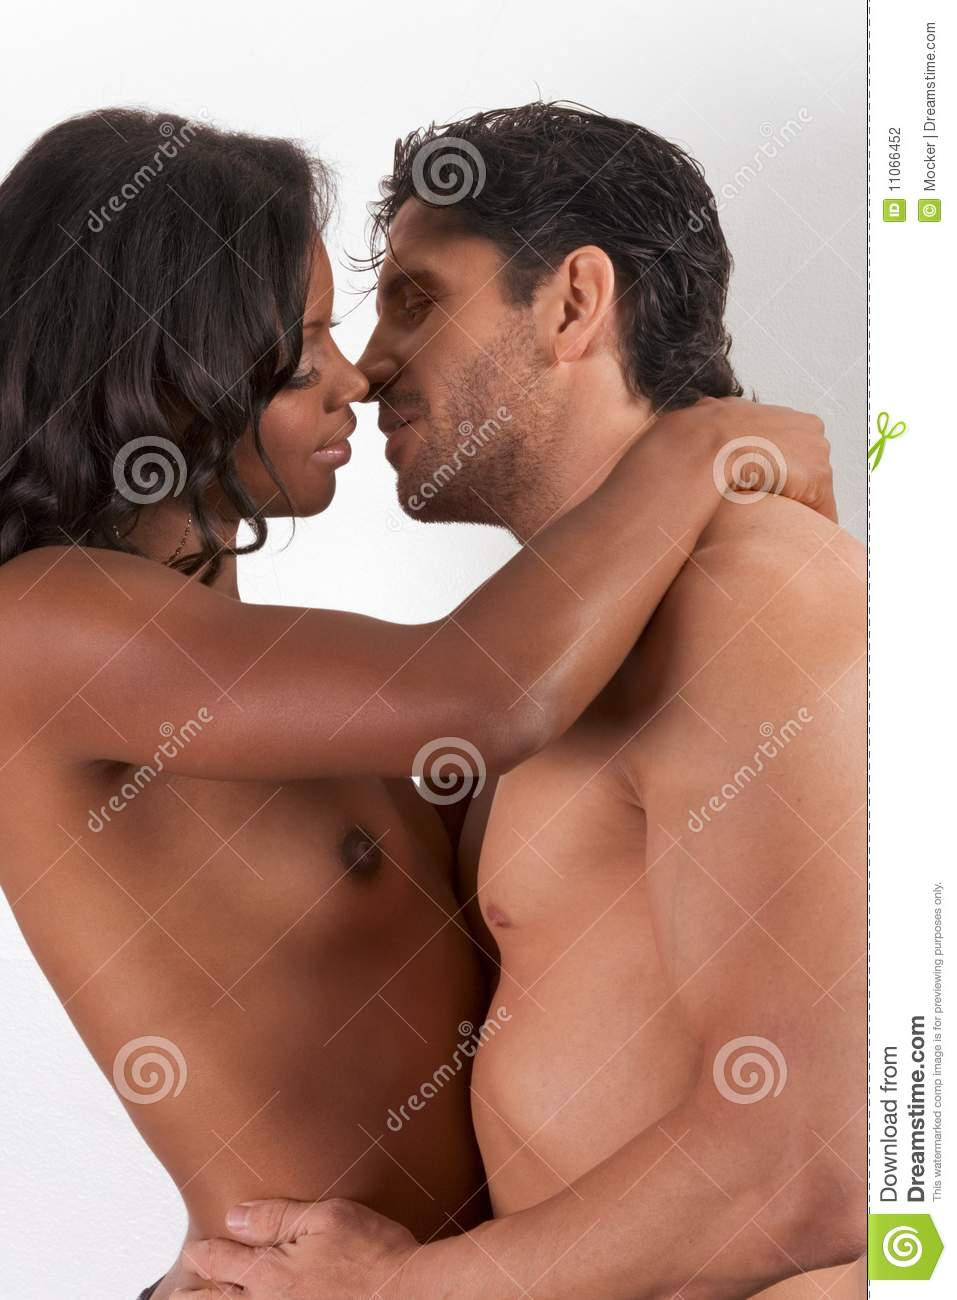 Women kissing women naked